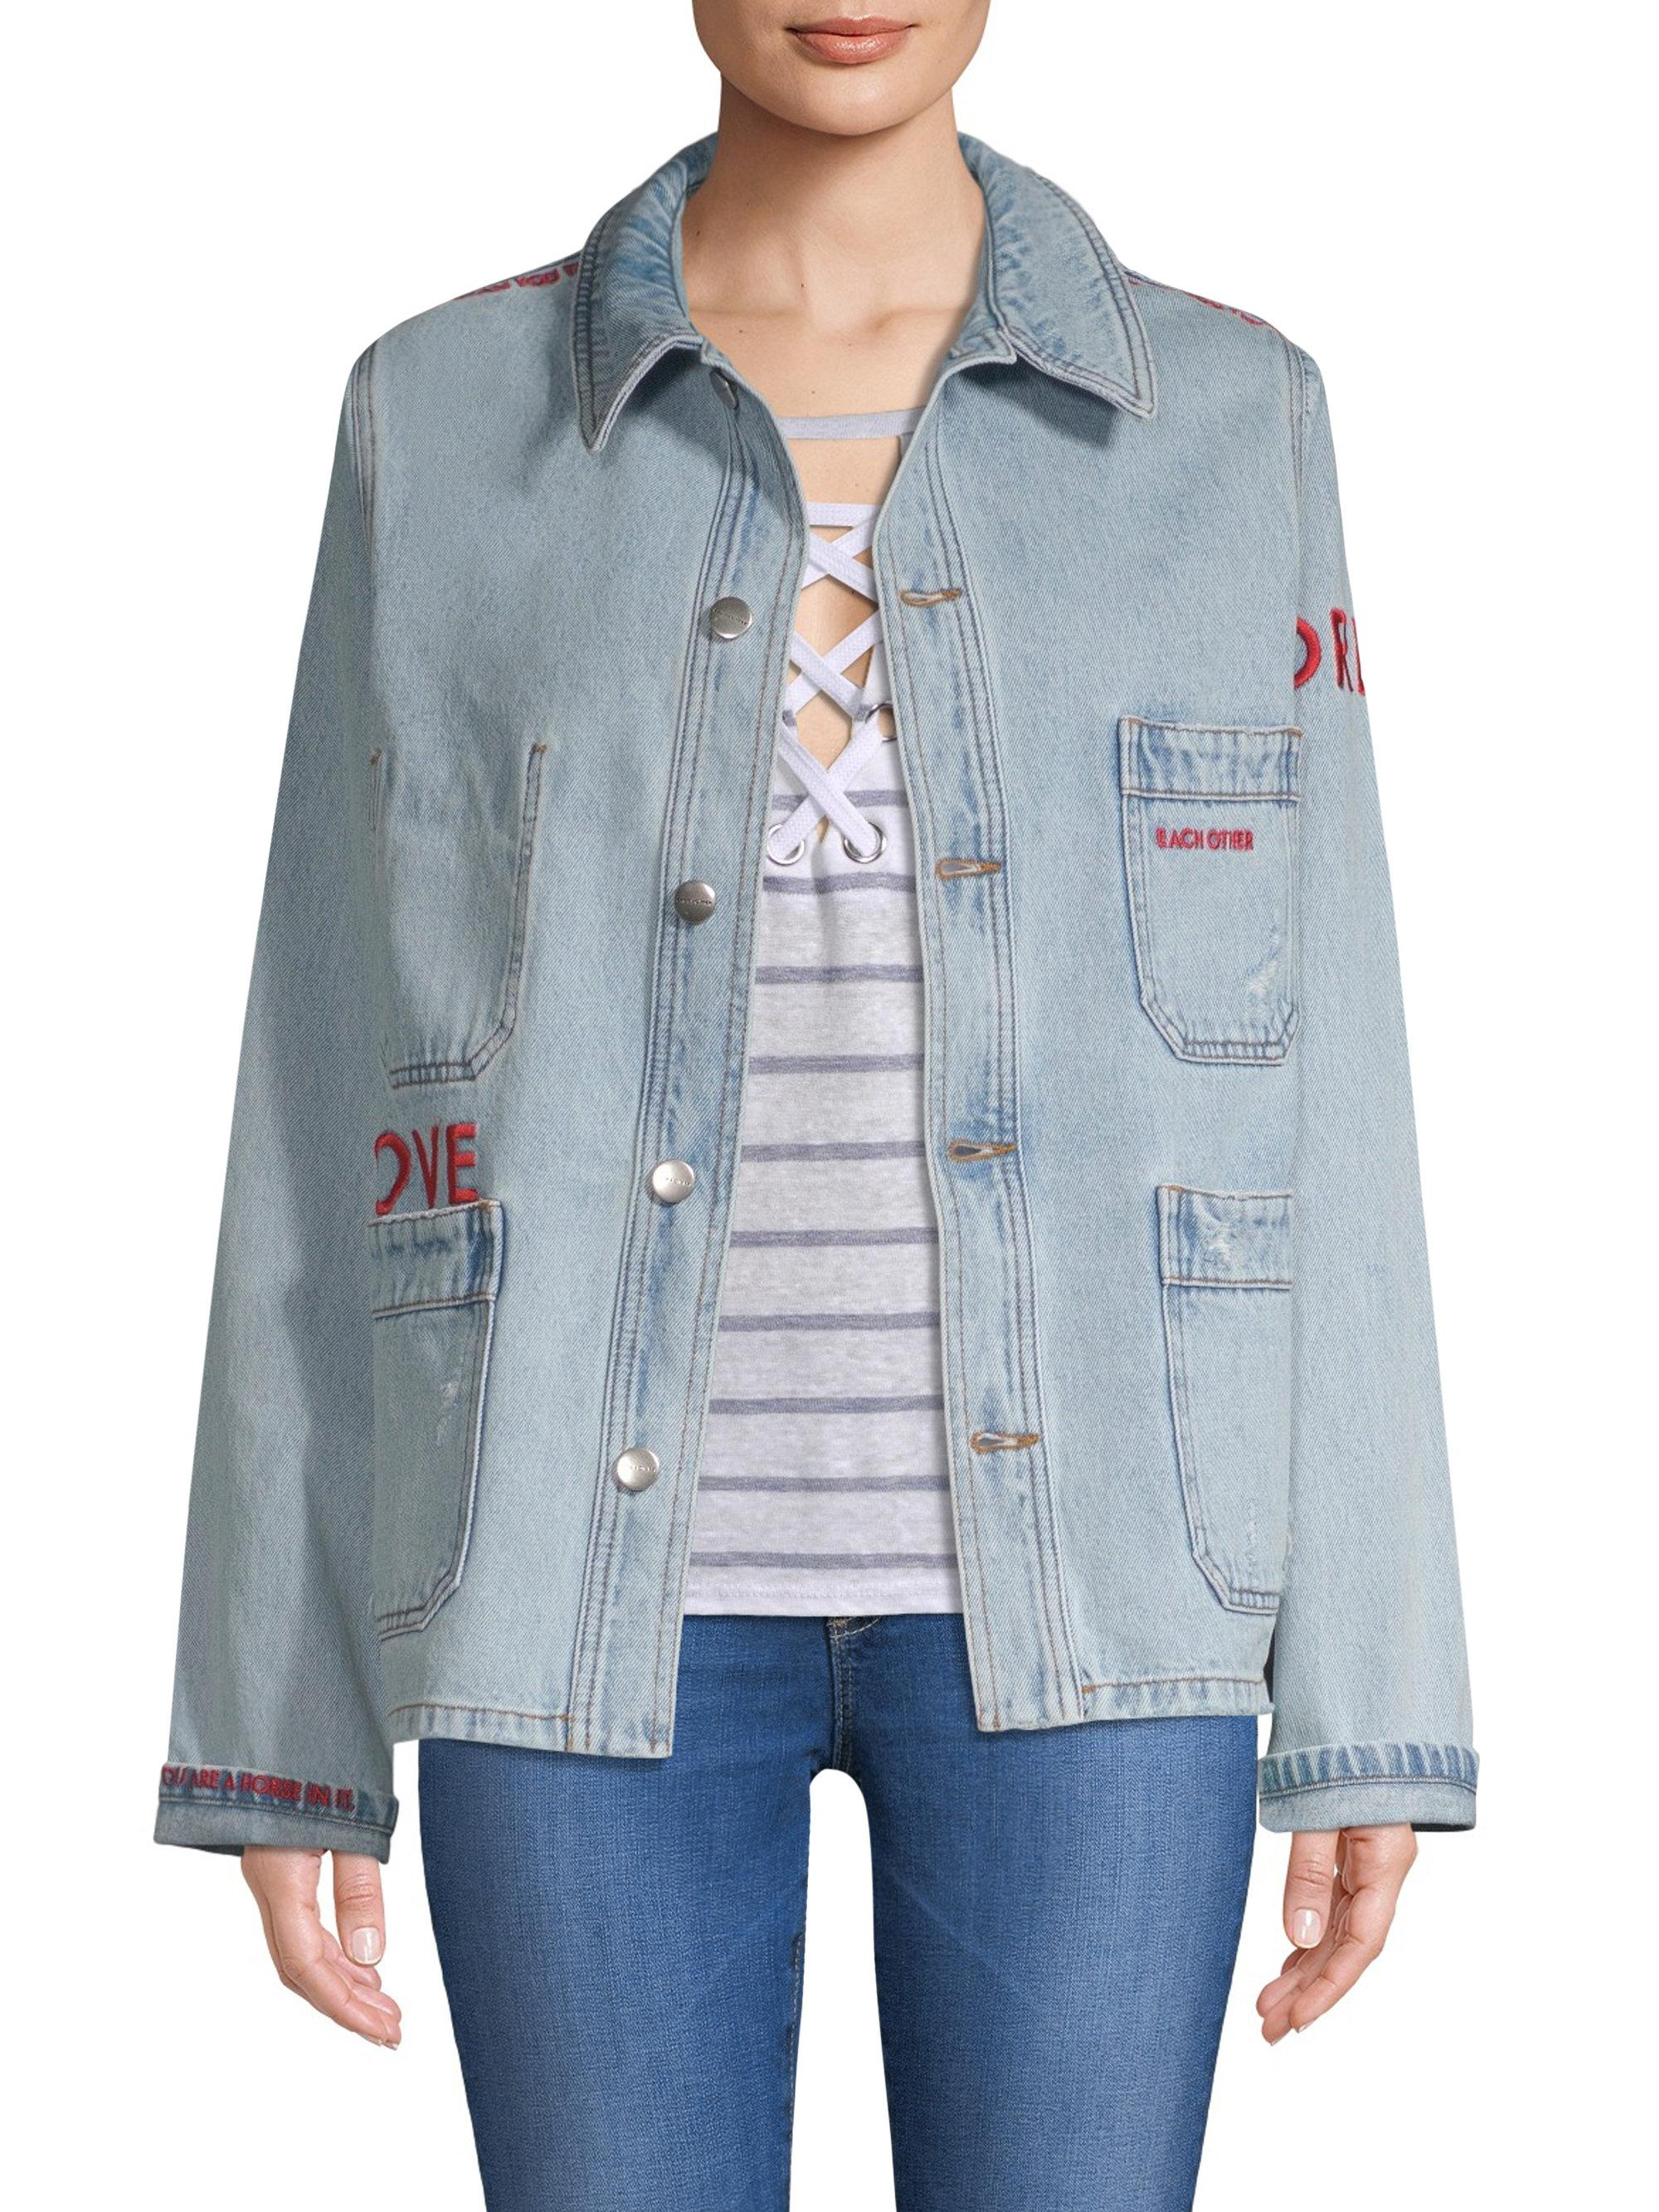 Countdown Package Cheap Online Each X Other ripped effect denim jacket Authentic Sale Lowest Price BsNUyfpl